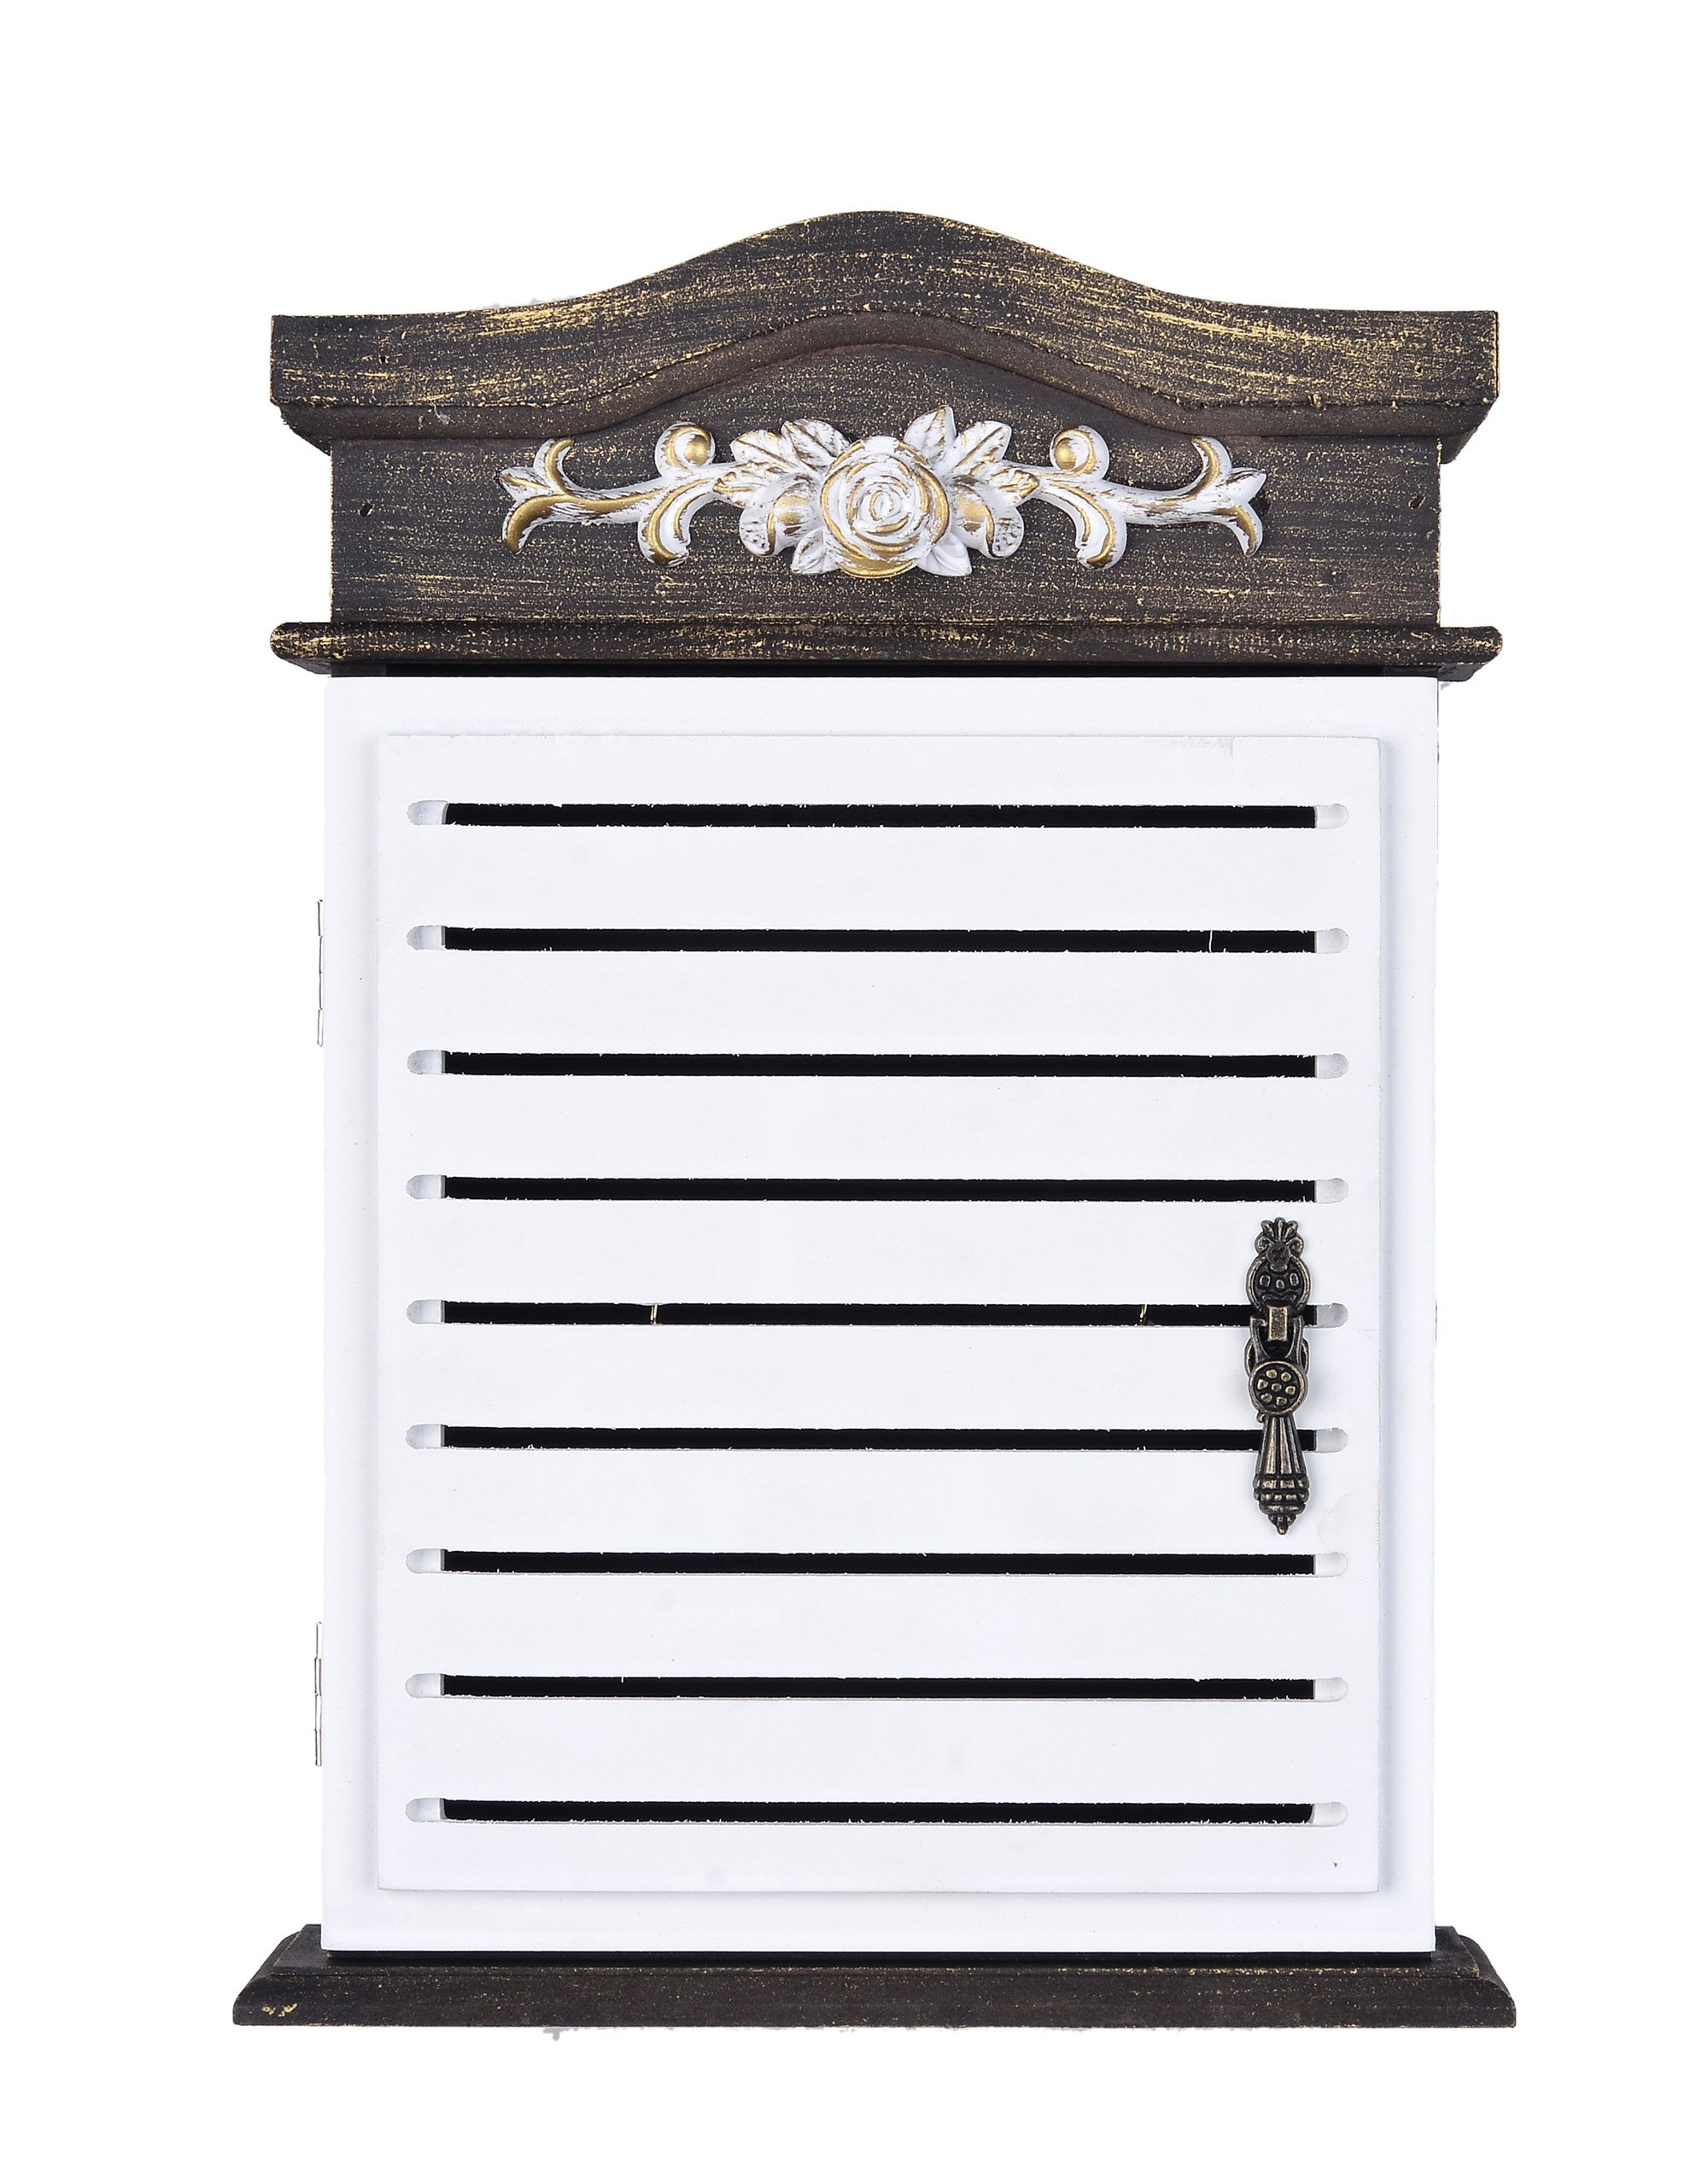 Wooden Key Holder Box 6 Hooks Wall Mounted Handmade with Rustic Finish Home Décor